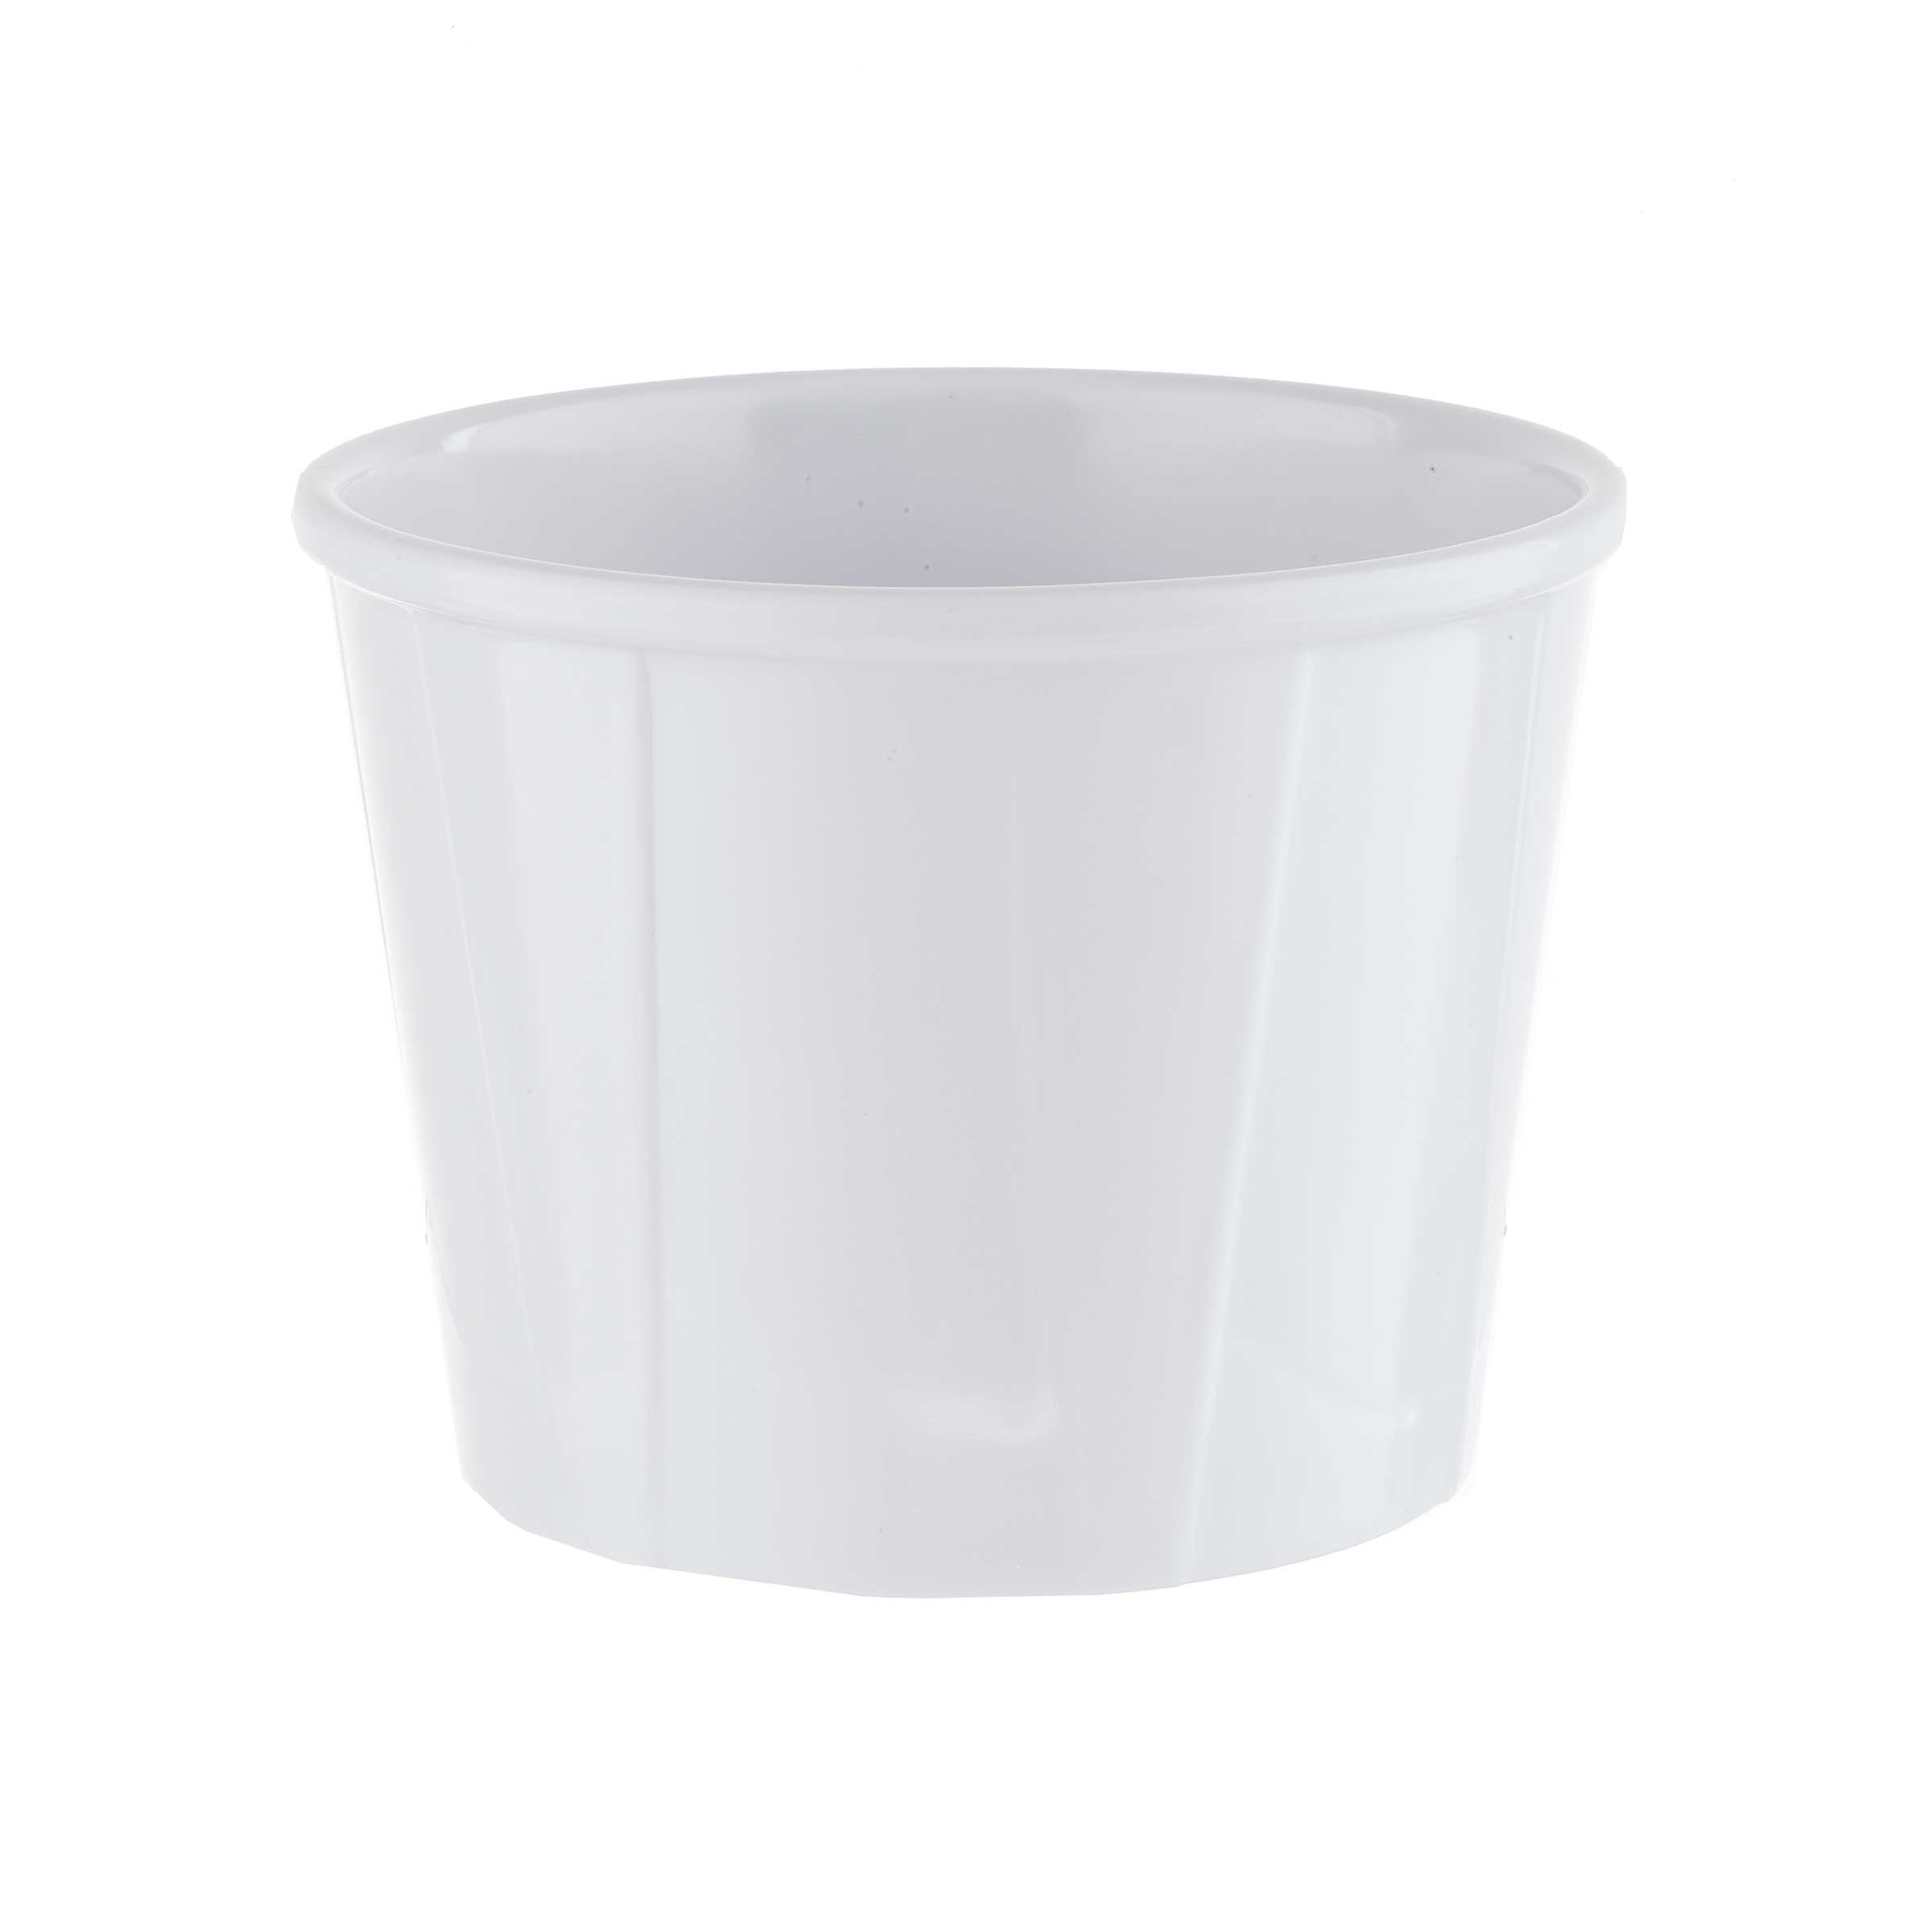 TableCraft Products 240006 bowl, plastic,  0 - 31 oz